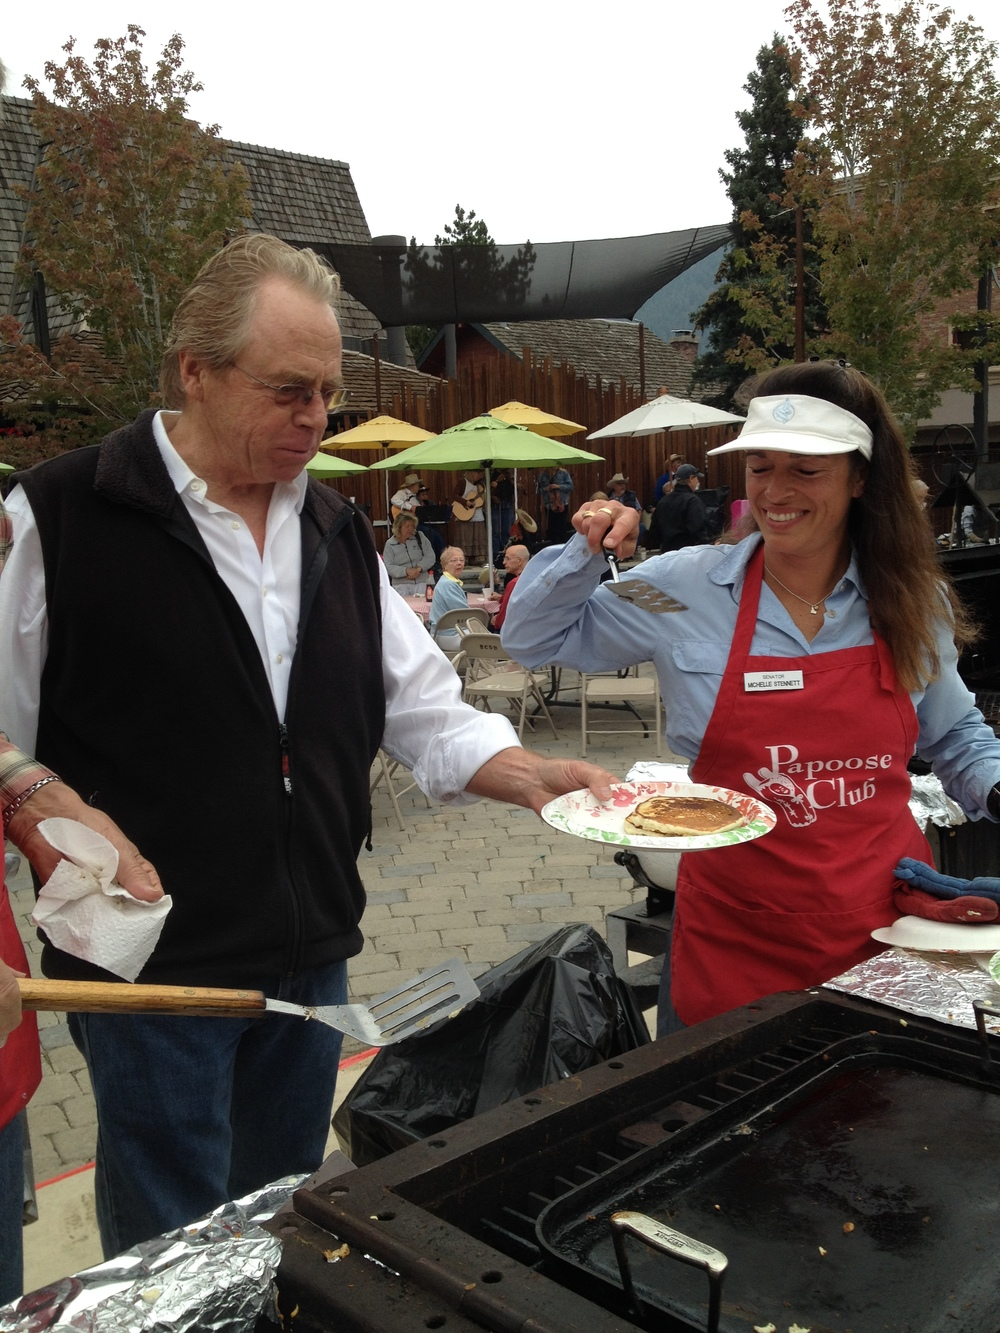 Serving pancake, Papoose Club Wagon Days pancake breakfast